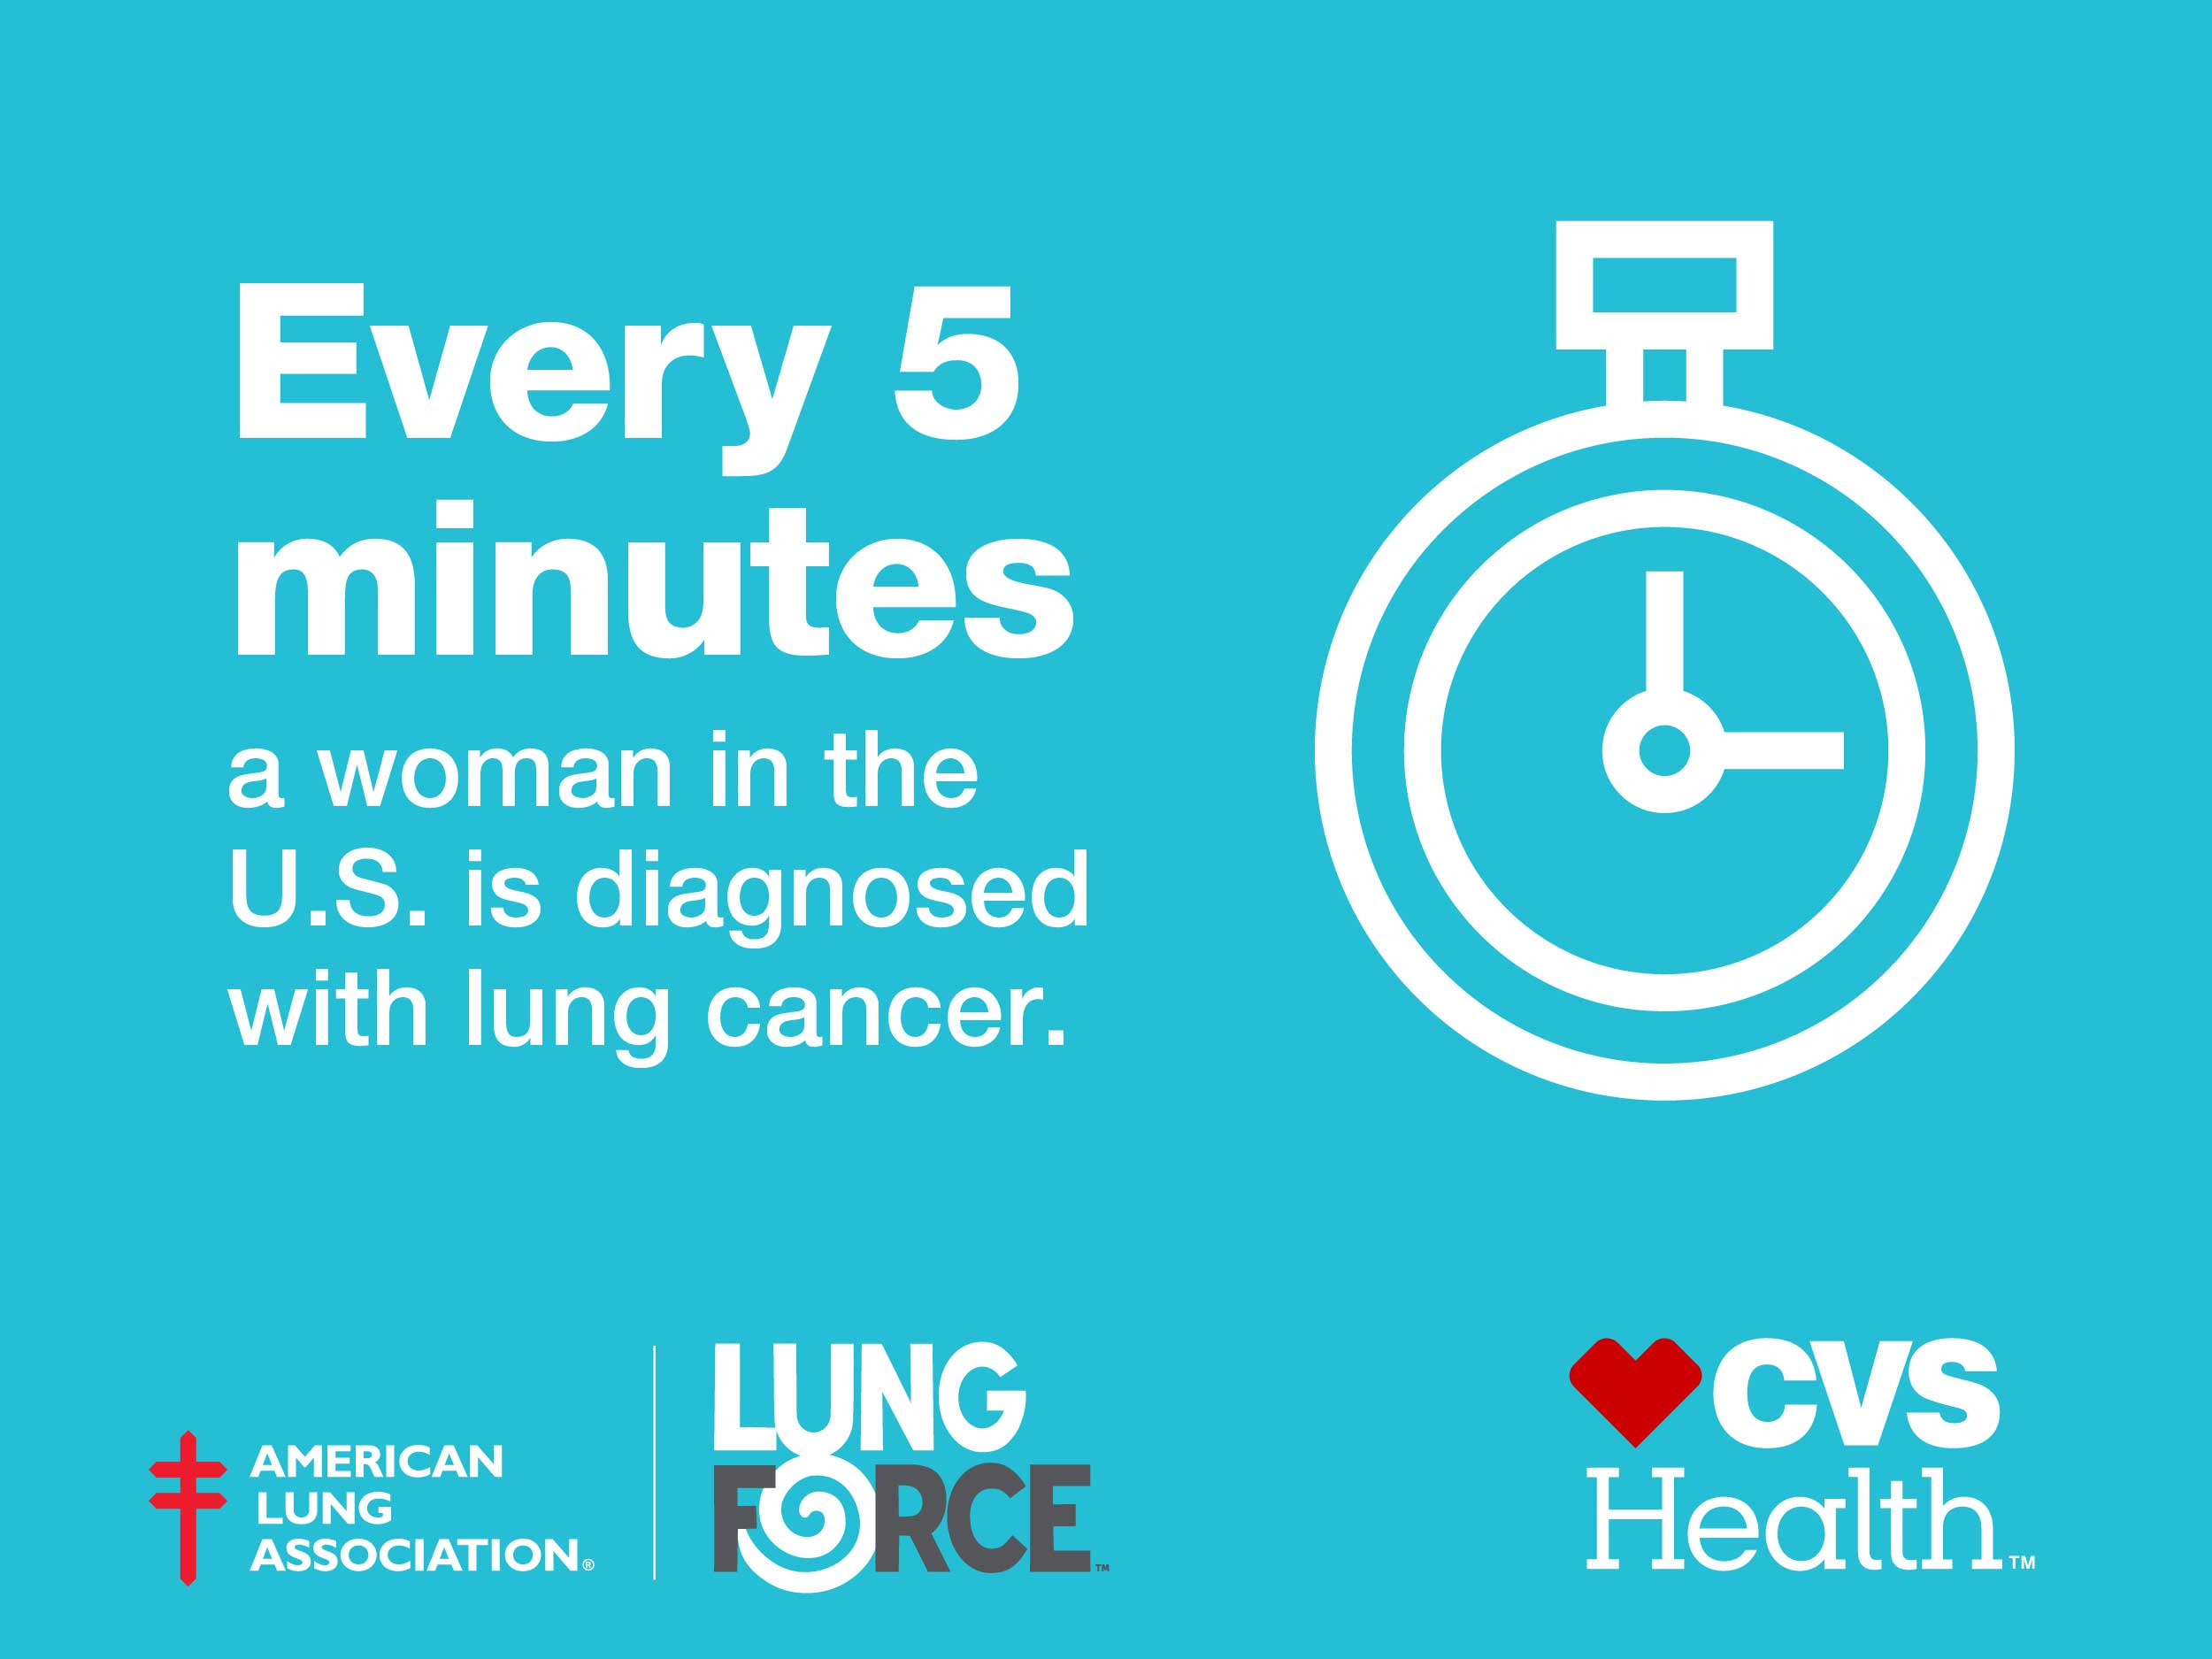 Every 5 minutes a woman in the U.S. is diagnosed with lung cancer.